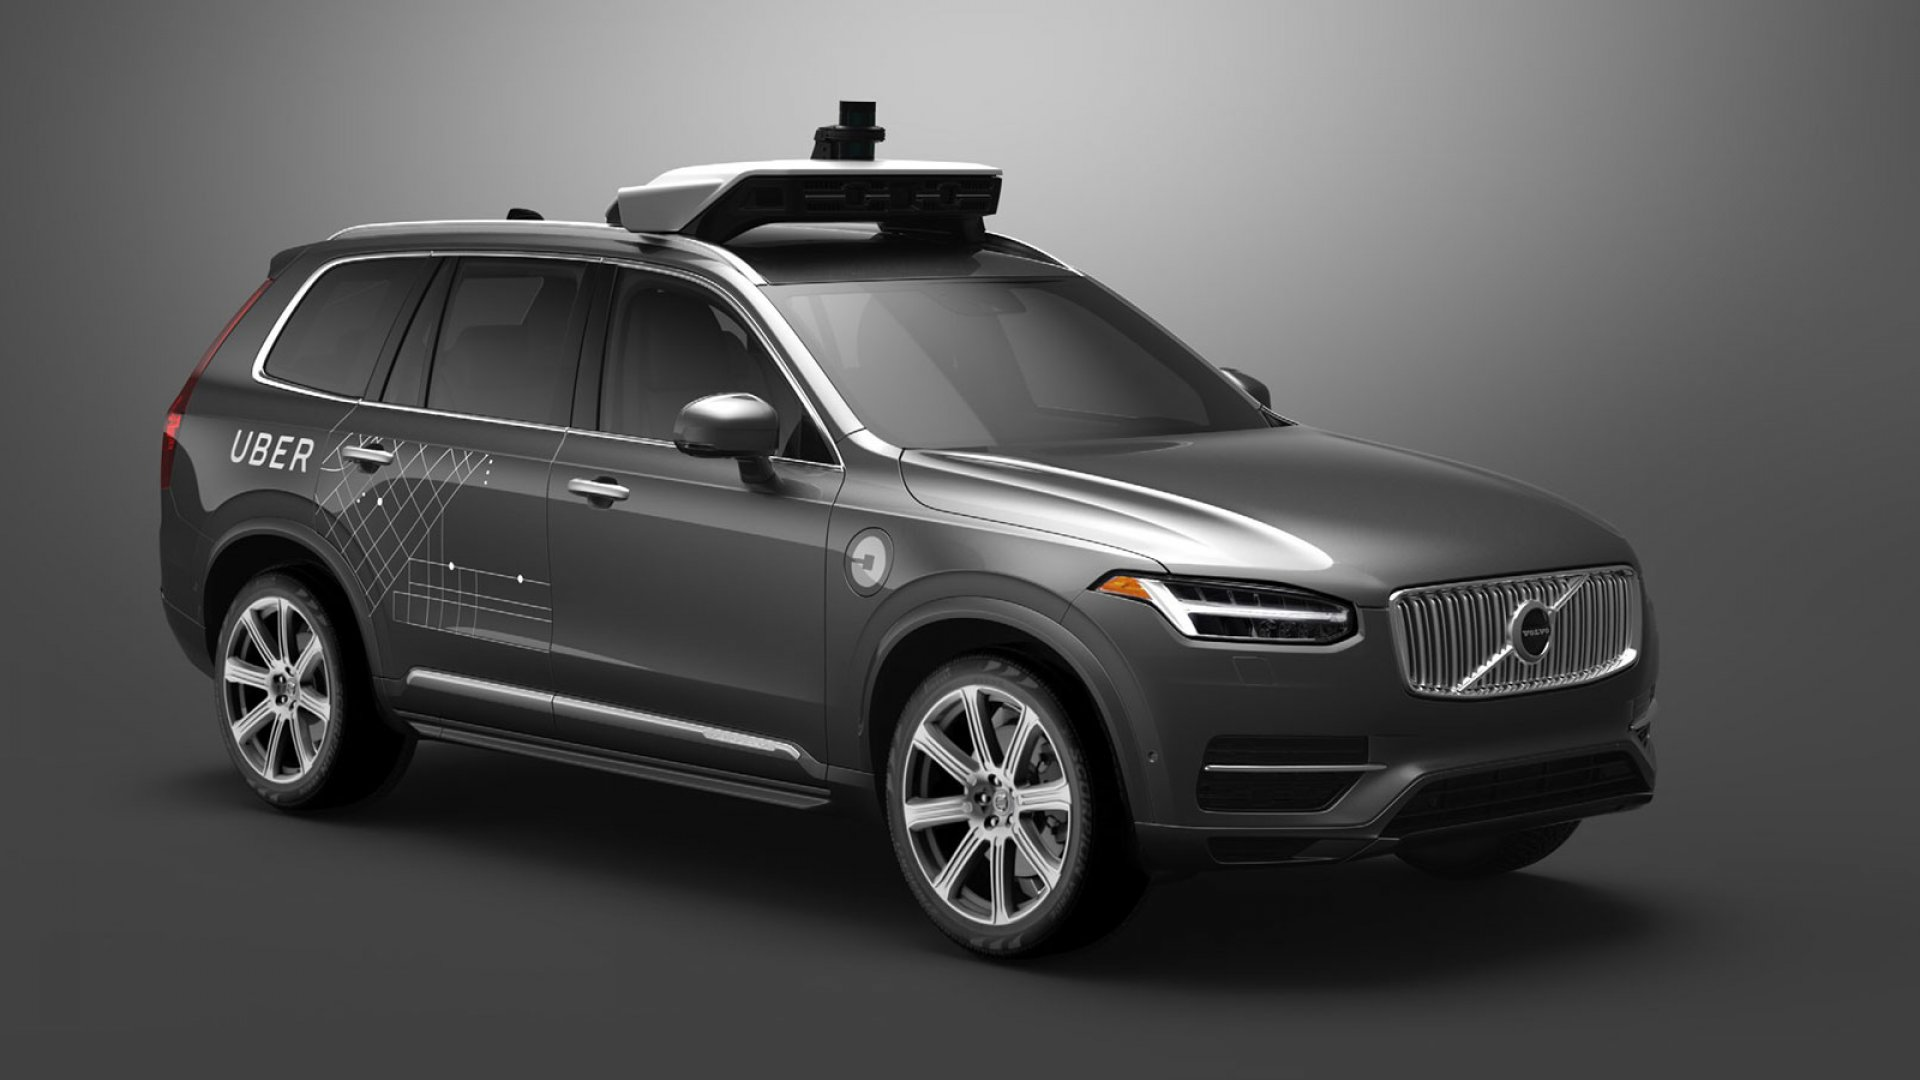 Uber's First Self-Driving Cars Will Start Taking Passengers This Month